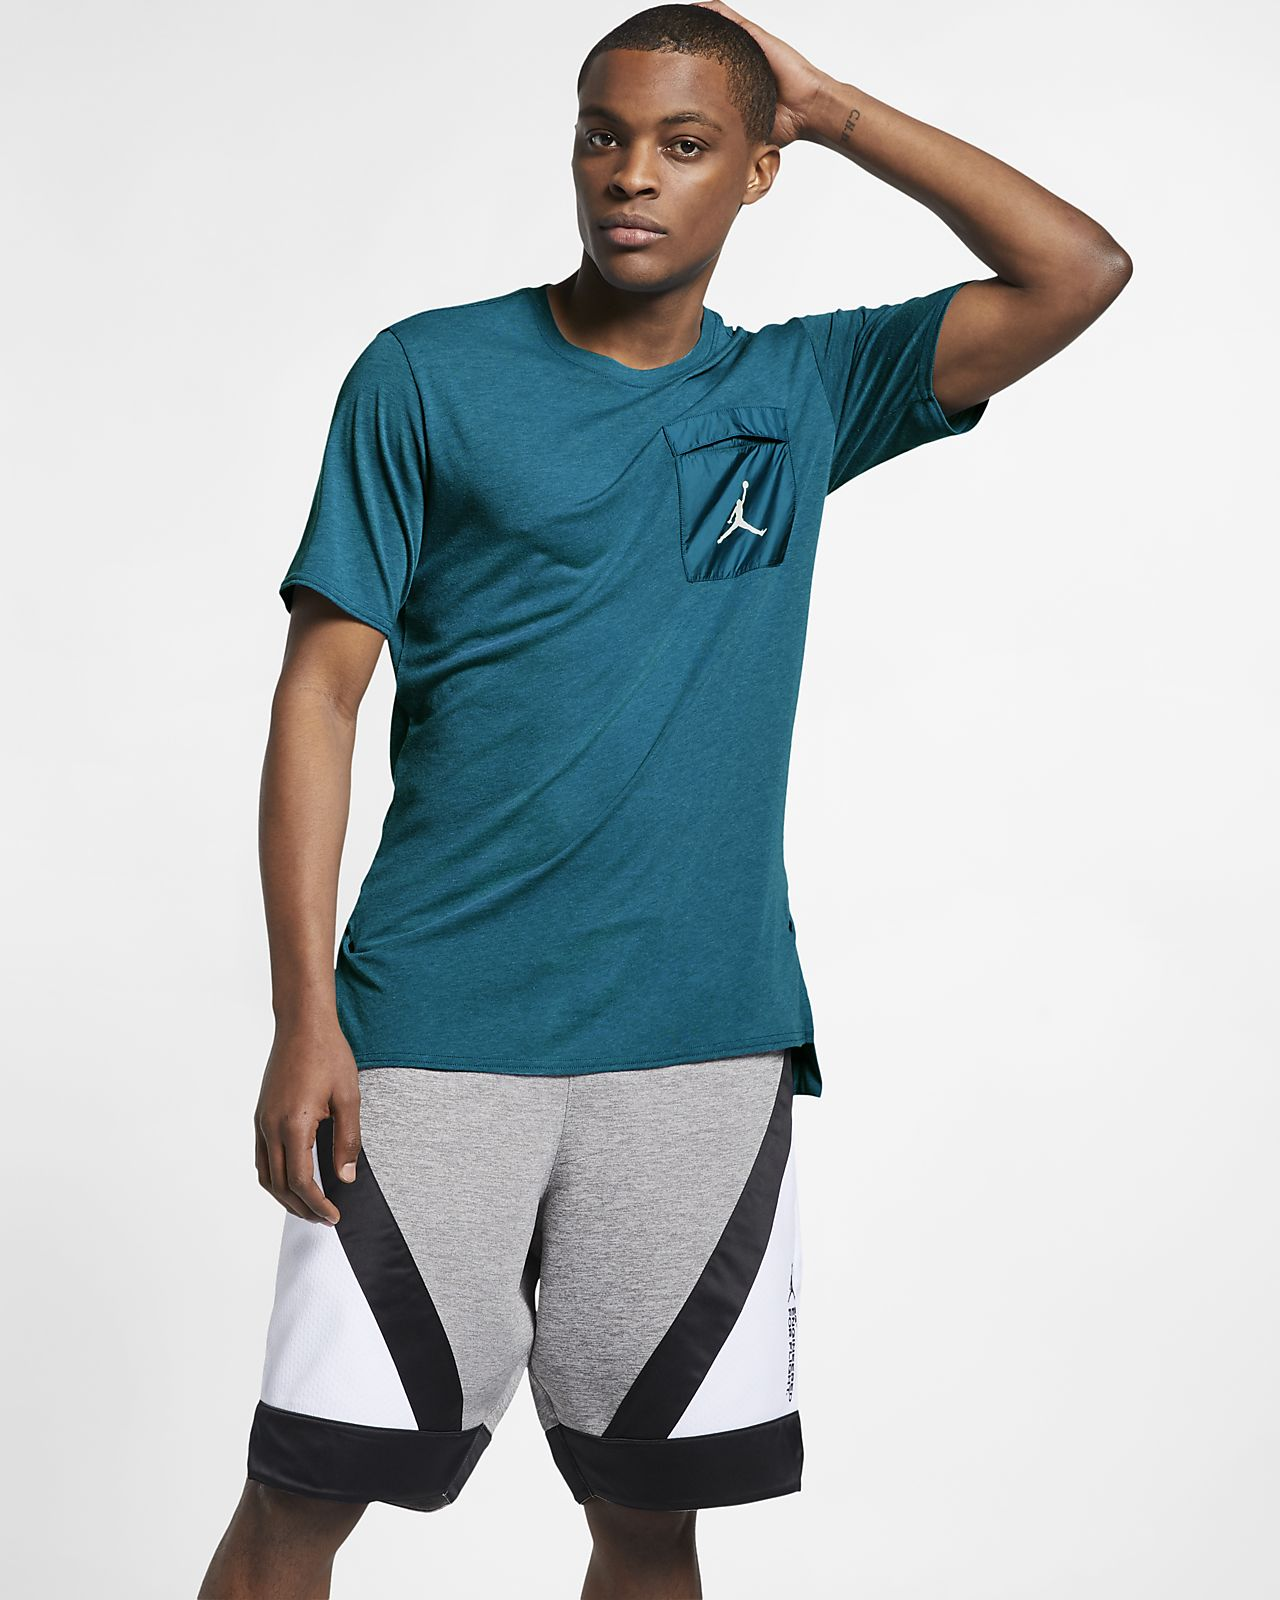 Maglia da training a manica corta Jordan 23 Engineered Cool - Uomo